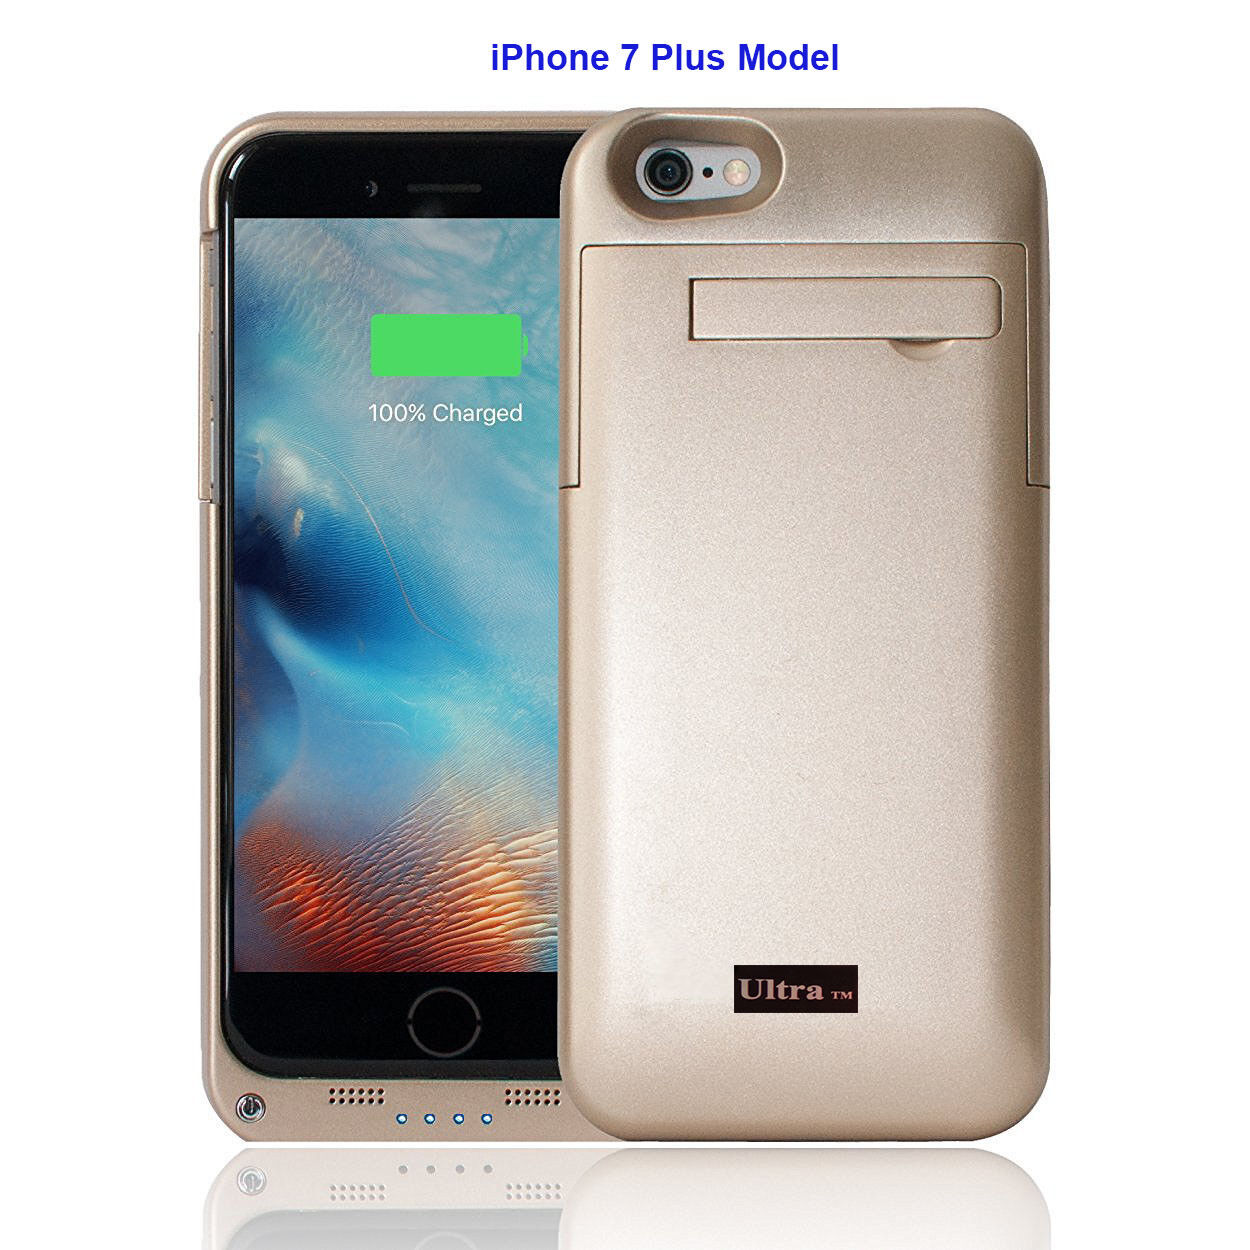 san francisco af3a7 07905 Details about New Gold Power Charging Case Iphone 7 and 8 5.5